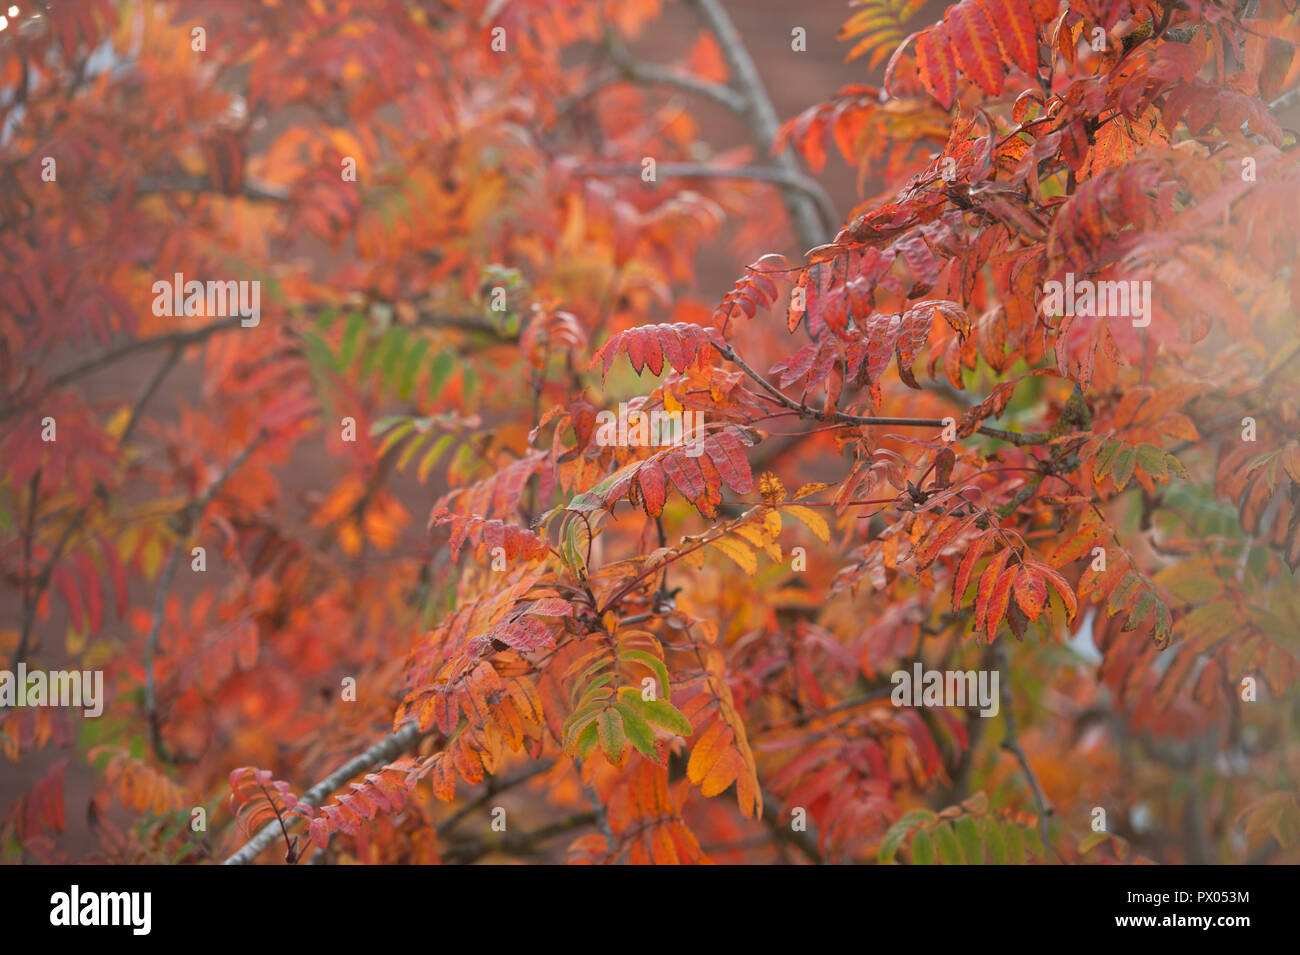 Rowan (Mountain Ash) leaves in their autumn plumage. - Stock Image